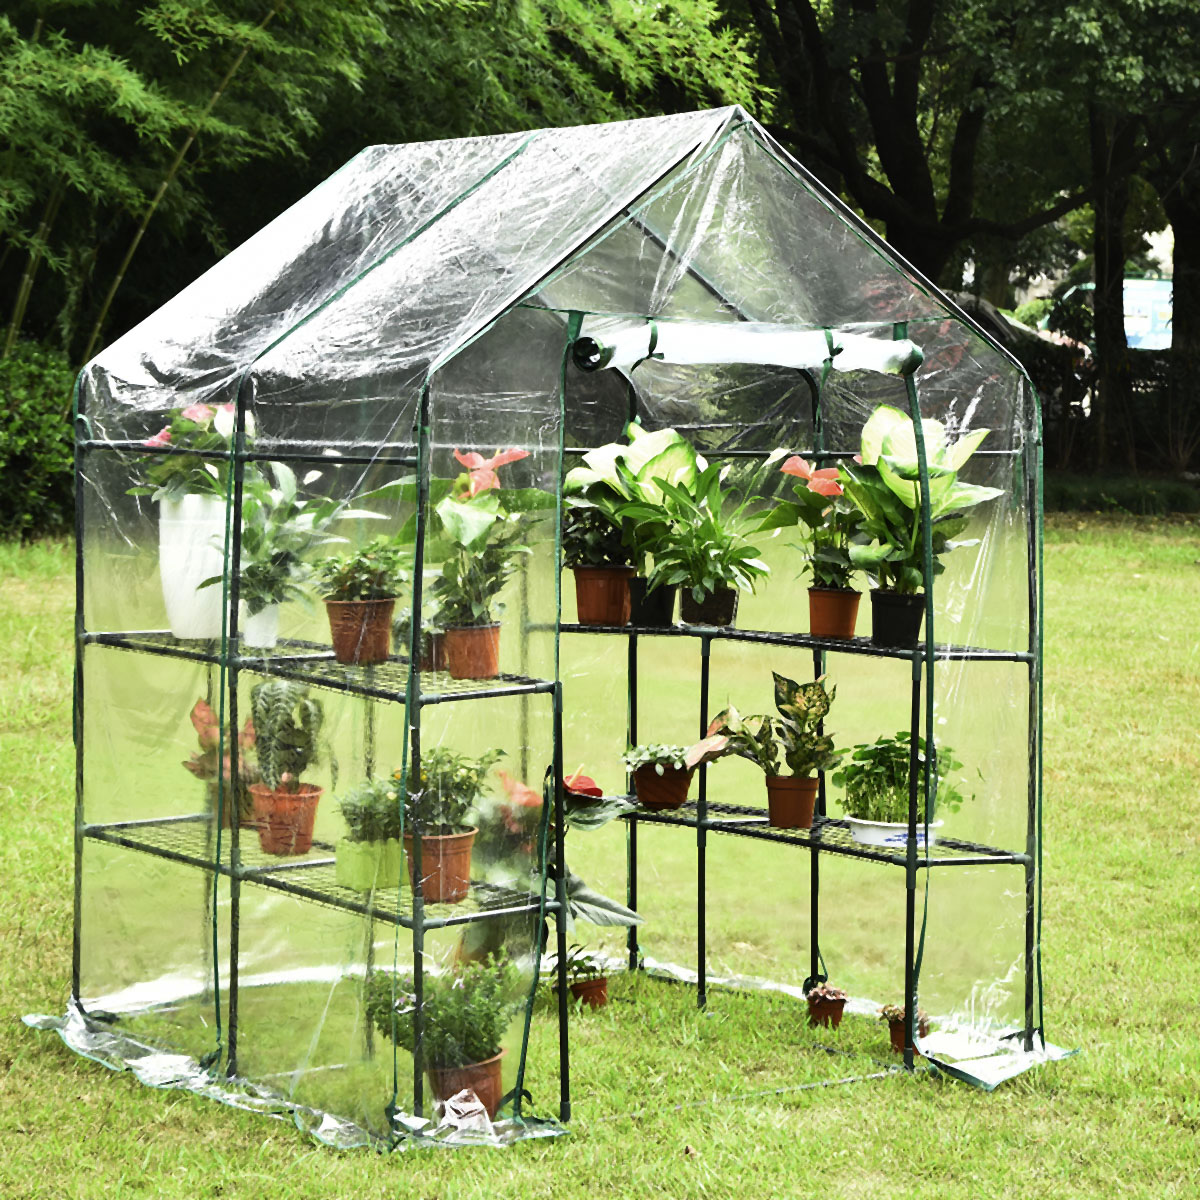 32+What To Cover Greenhouse With